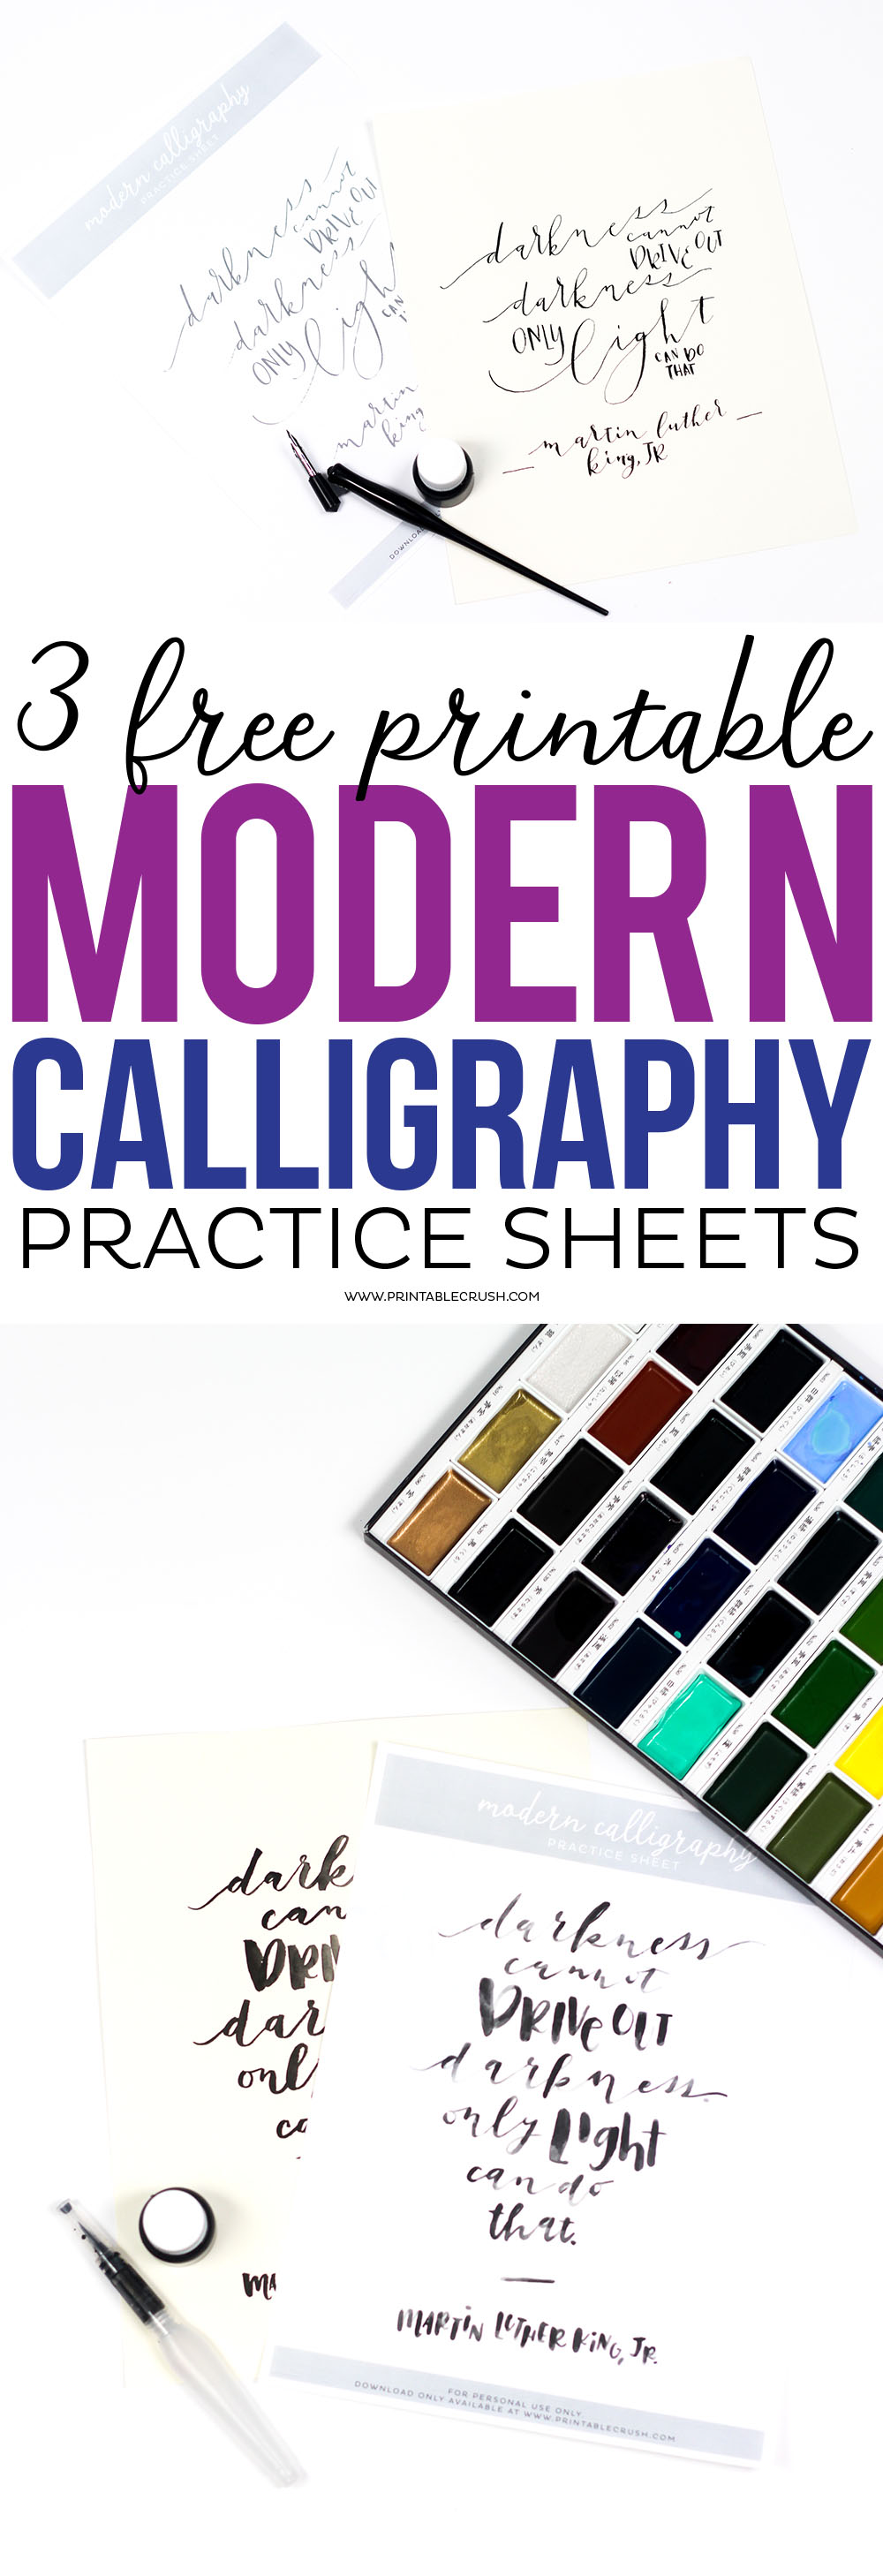 Download these 3 Free Printable Modern Calligraphy Practice Sheets to try 3 different lettering styles. Plus, discover new calligraphy materials. via @printablecrush